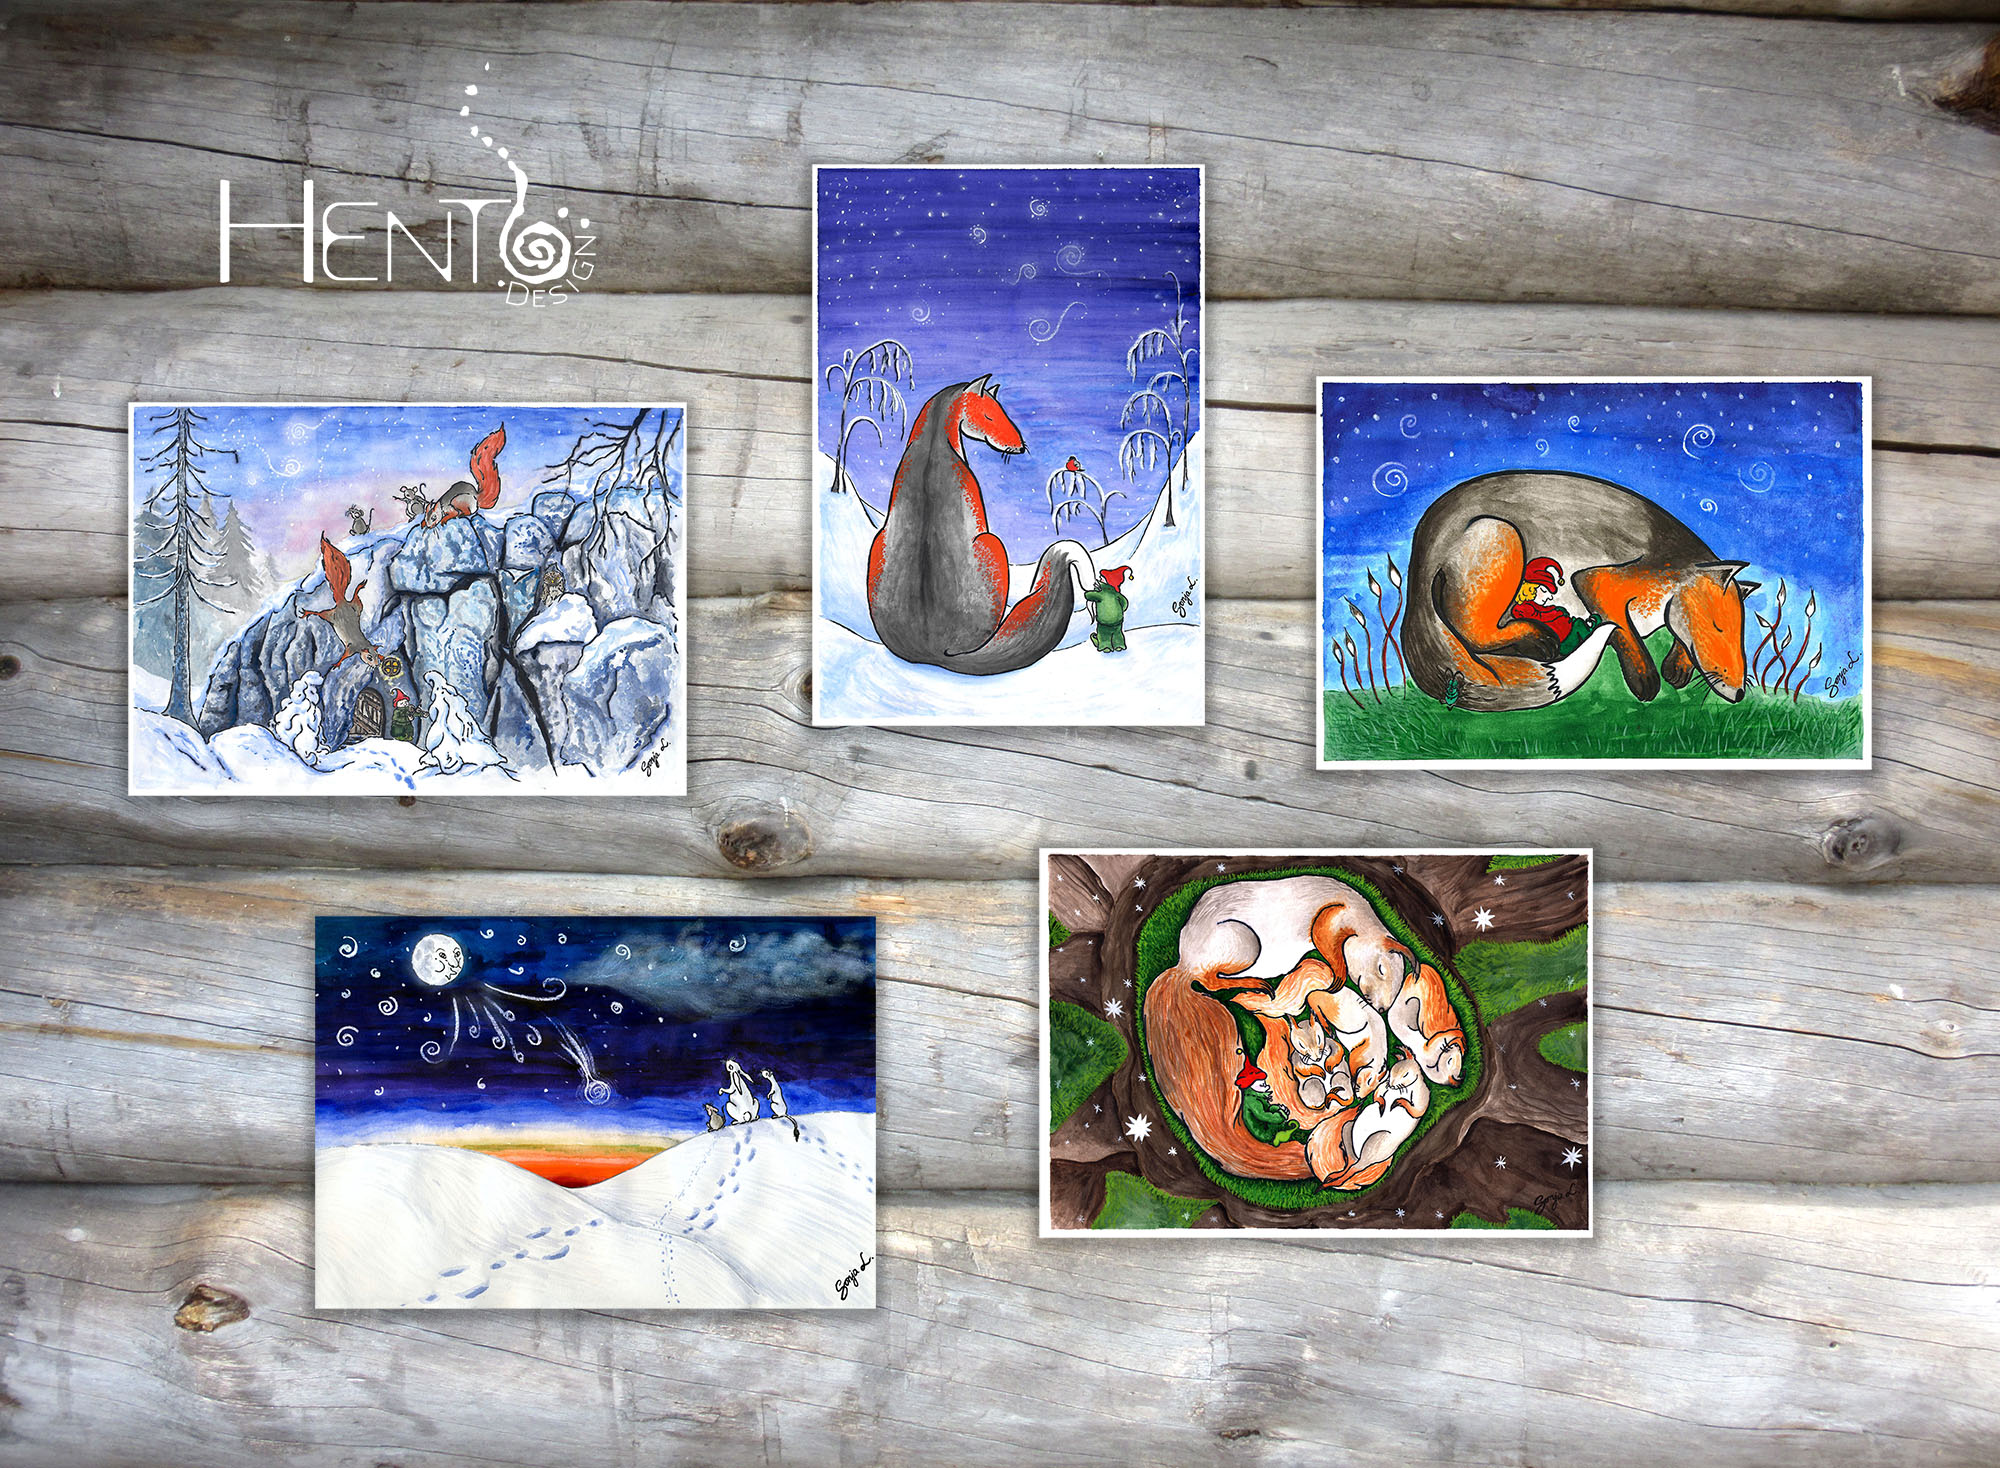 Hento Design - Christmas cards